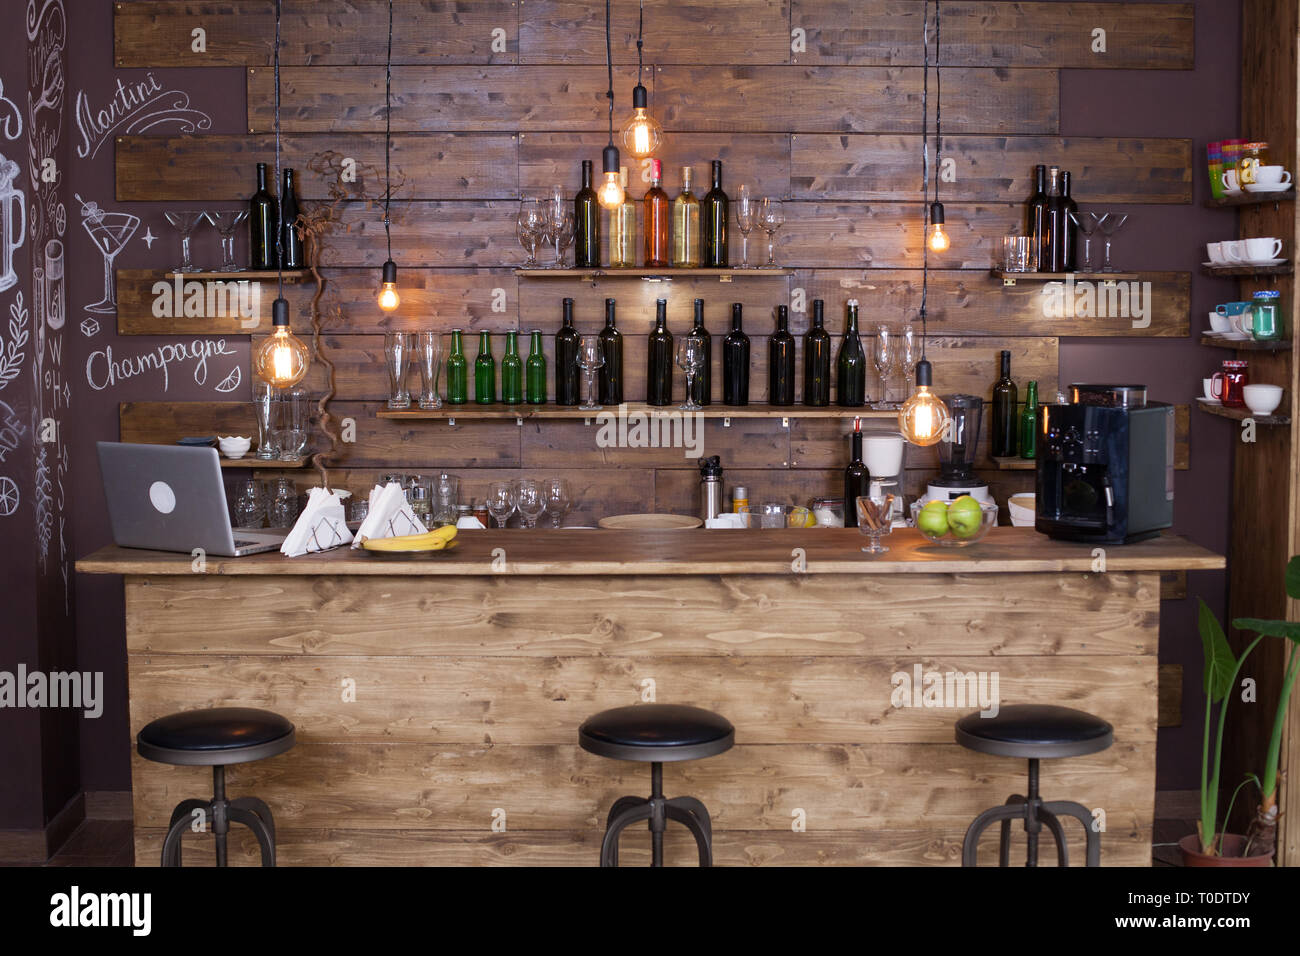 Coffee Shop Bar Counter With Wine Bottles Modern Design Vintage Atmosphere Stock Photo Alamy